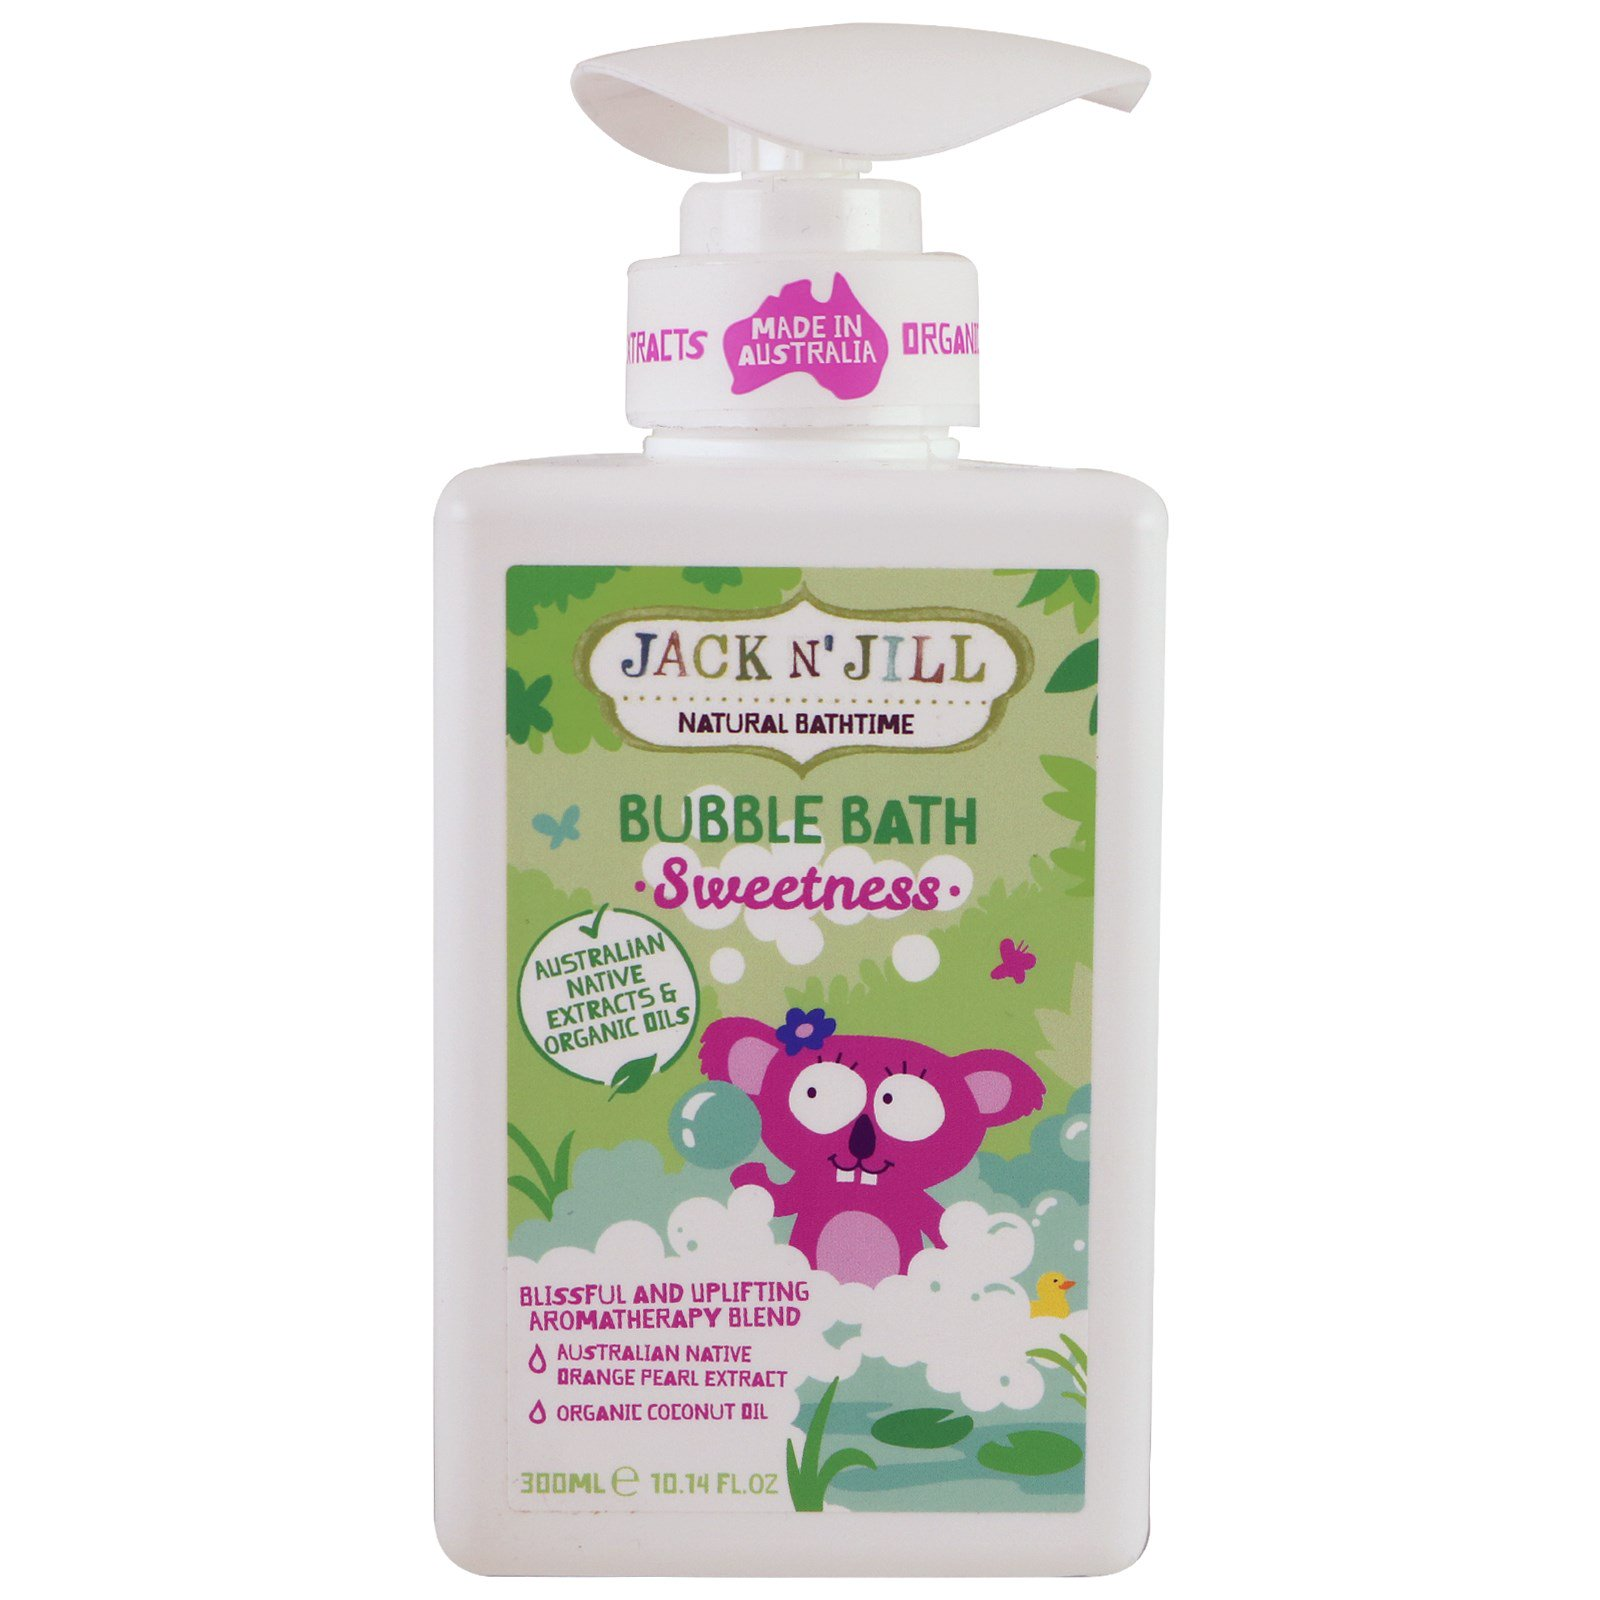 Jack n' Jill, Bubble Bath, Sweetness, 10.14 fl. oz (300 ml)